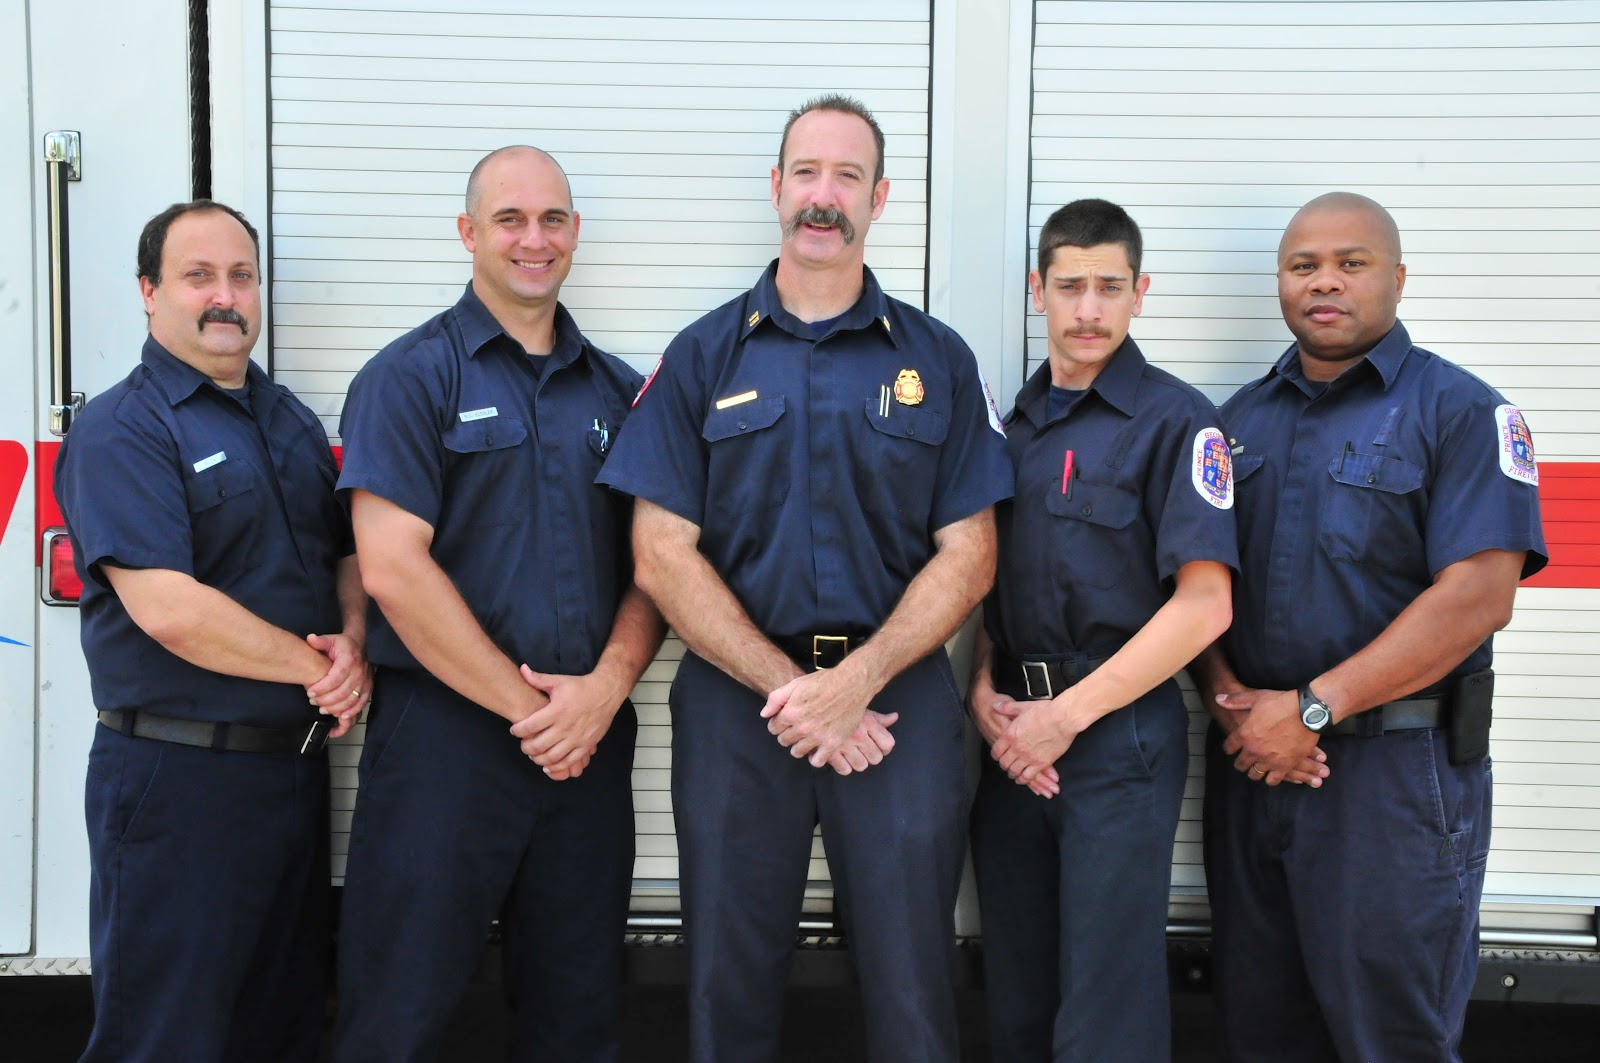 Prince George S County Fire Ems Department Photo Day At